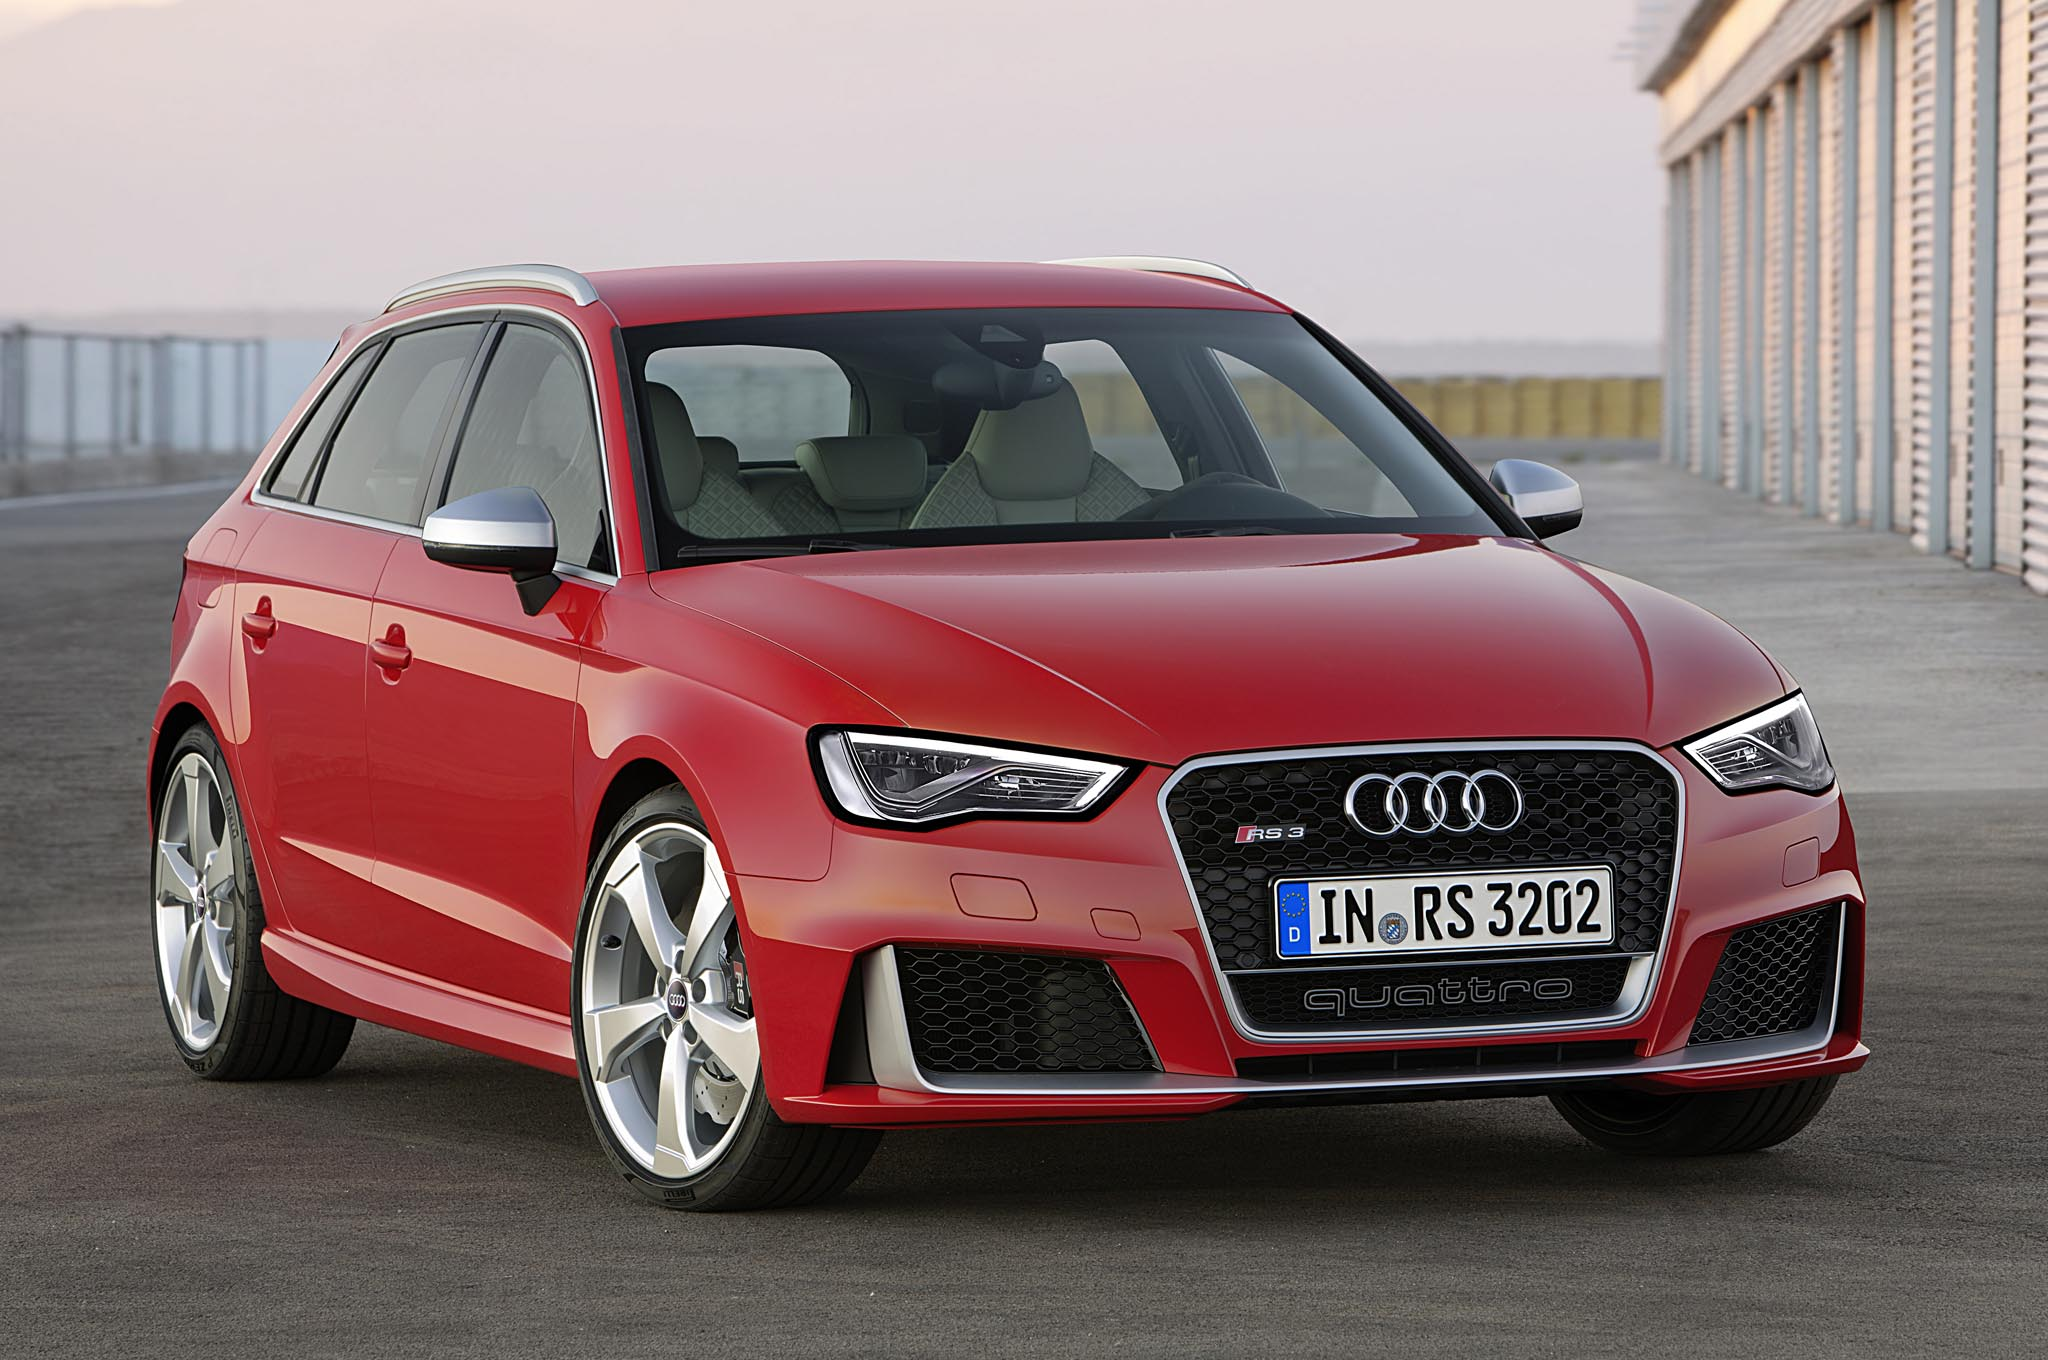 362-HP Audi RS3 Sportback Revealed for Europe